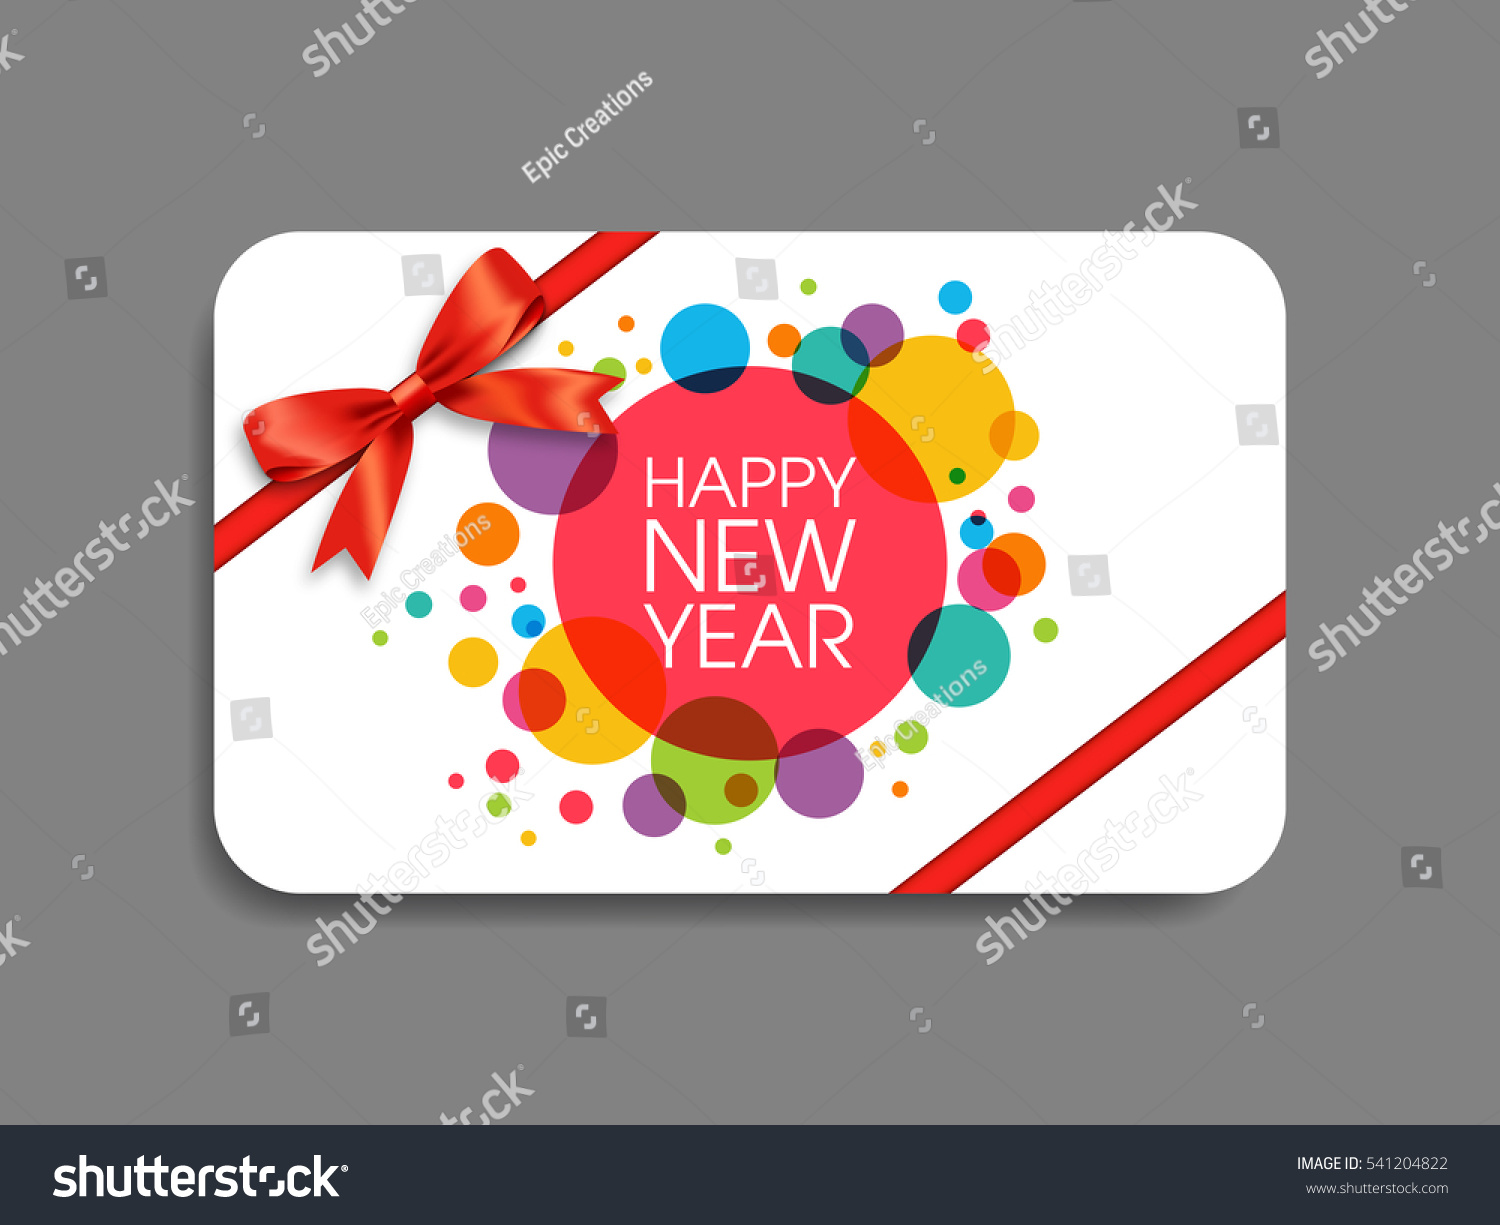 Gift Card Happy New Year 2017 Stock Vector Royalty Free 541204822